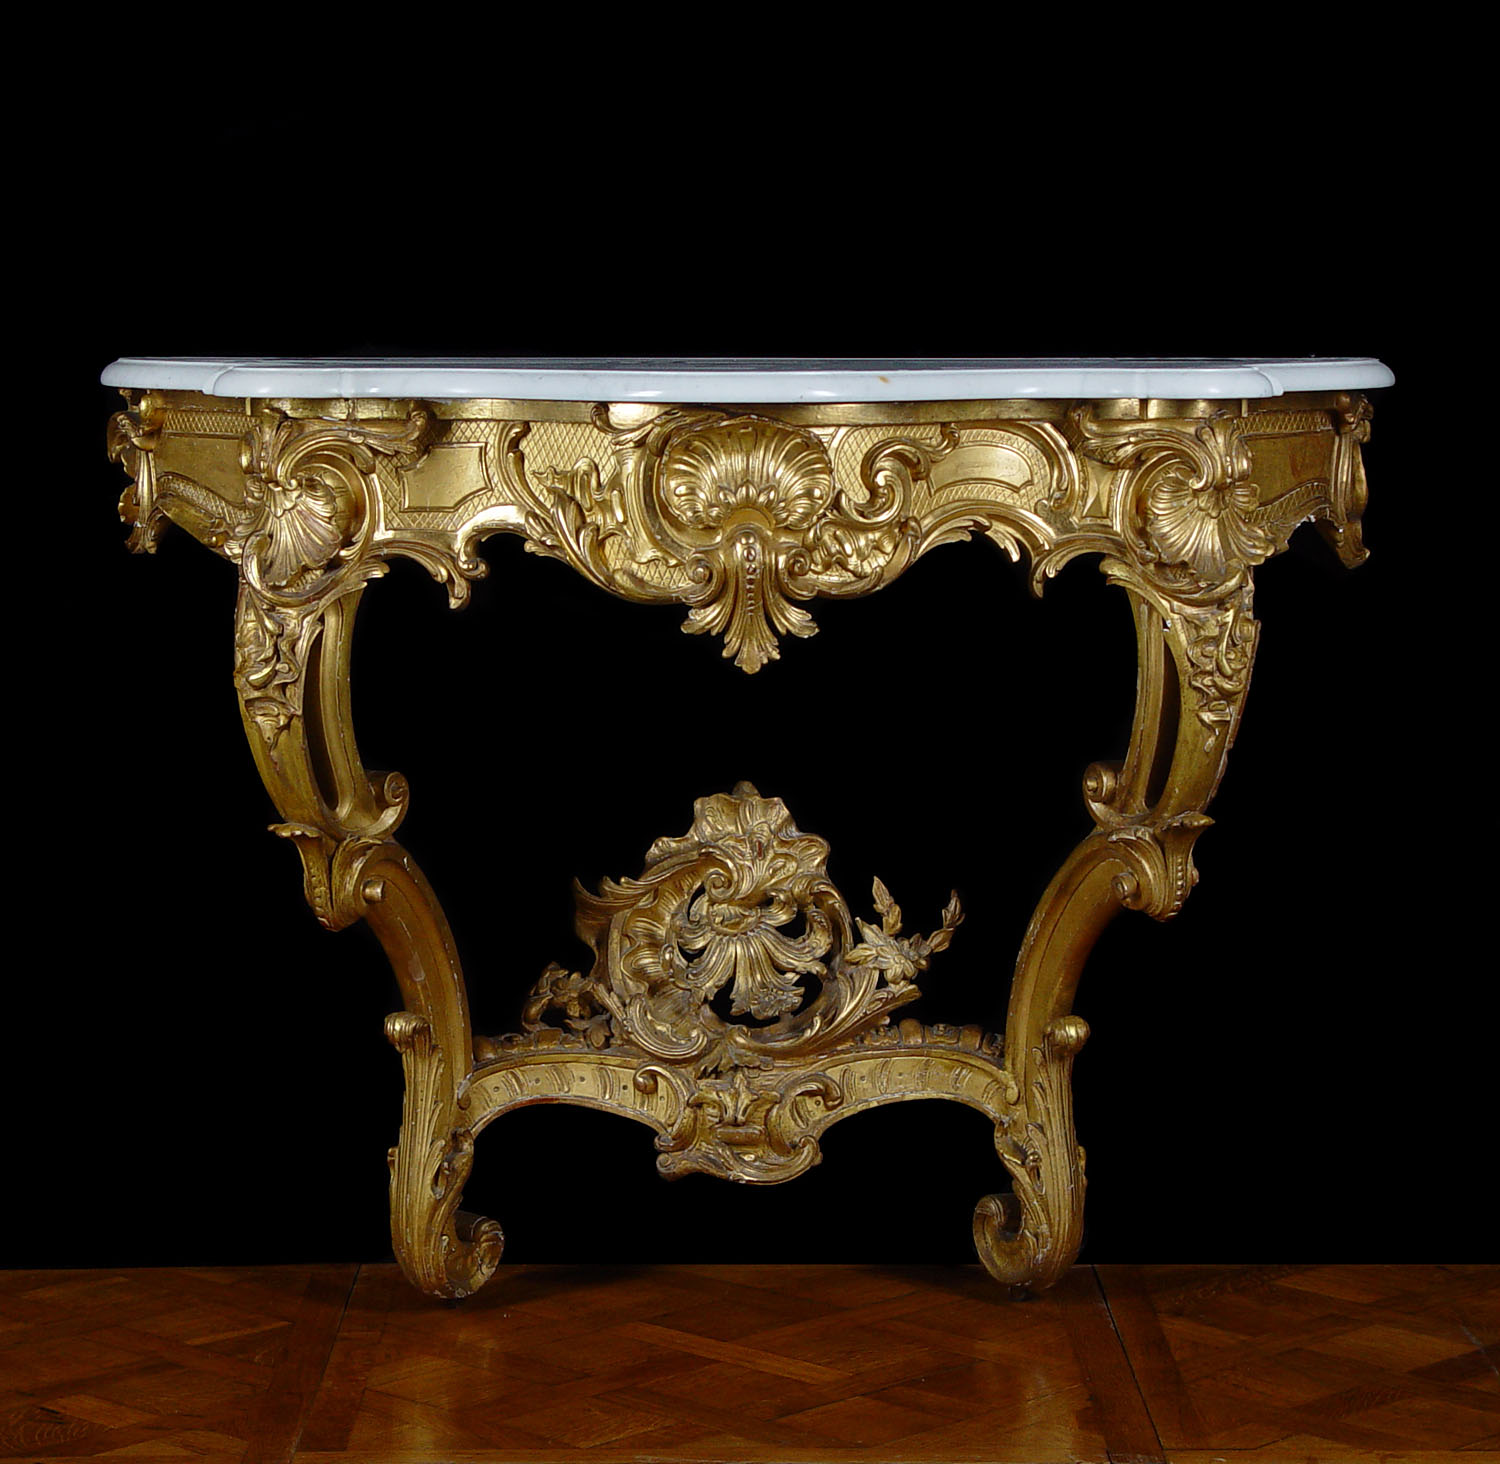 Antique Rococo Console Table in Giltwood in a Louis XV manner with marble top